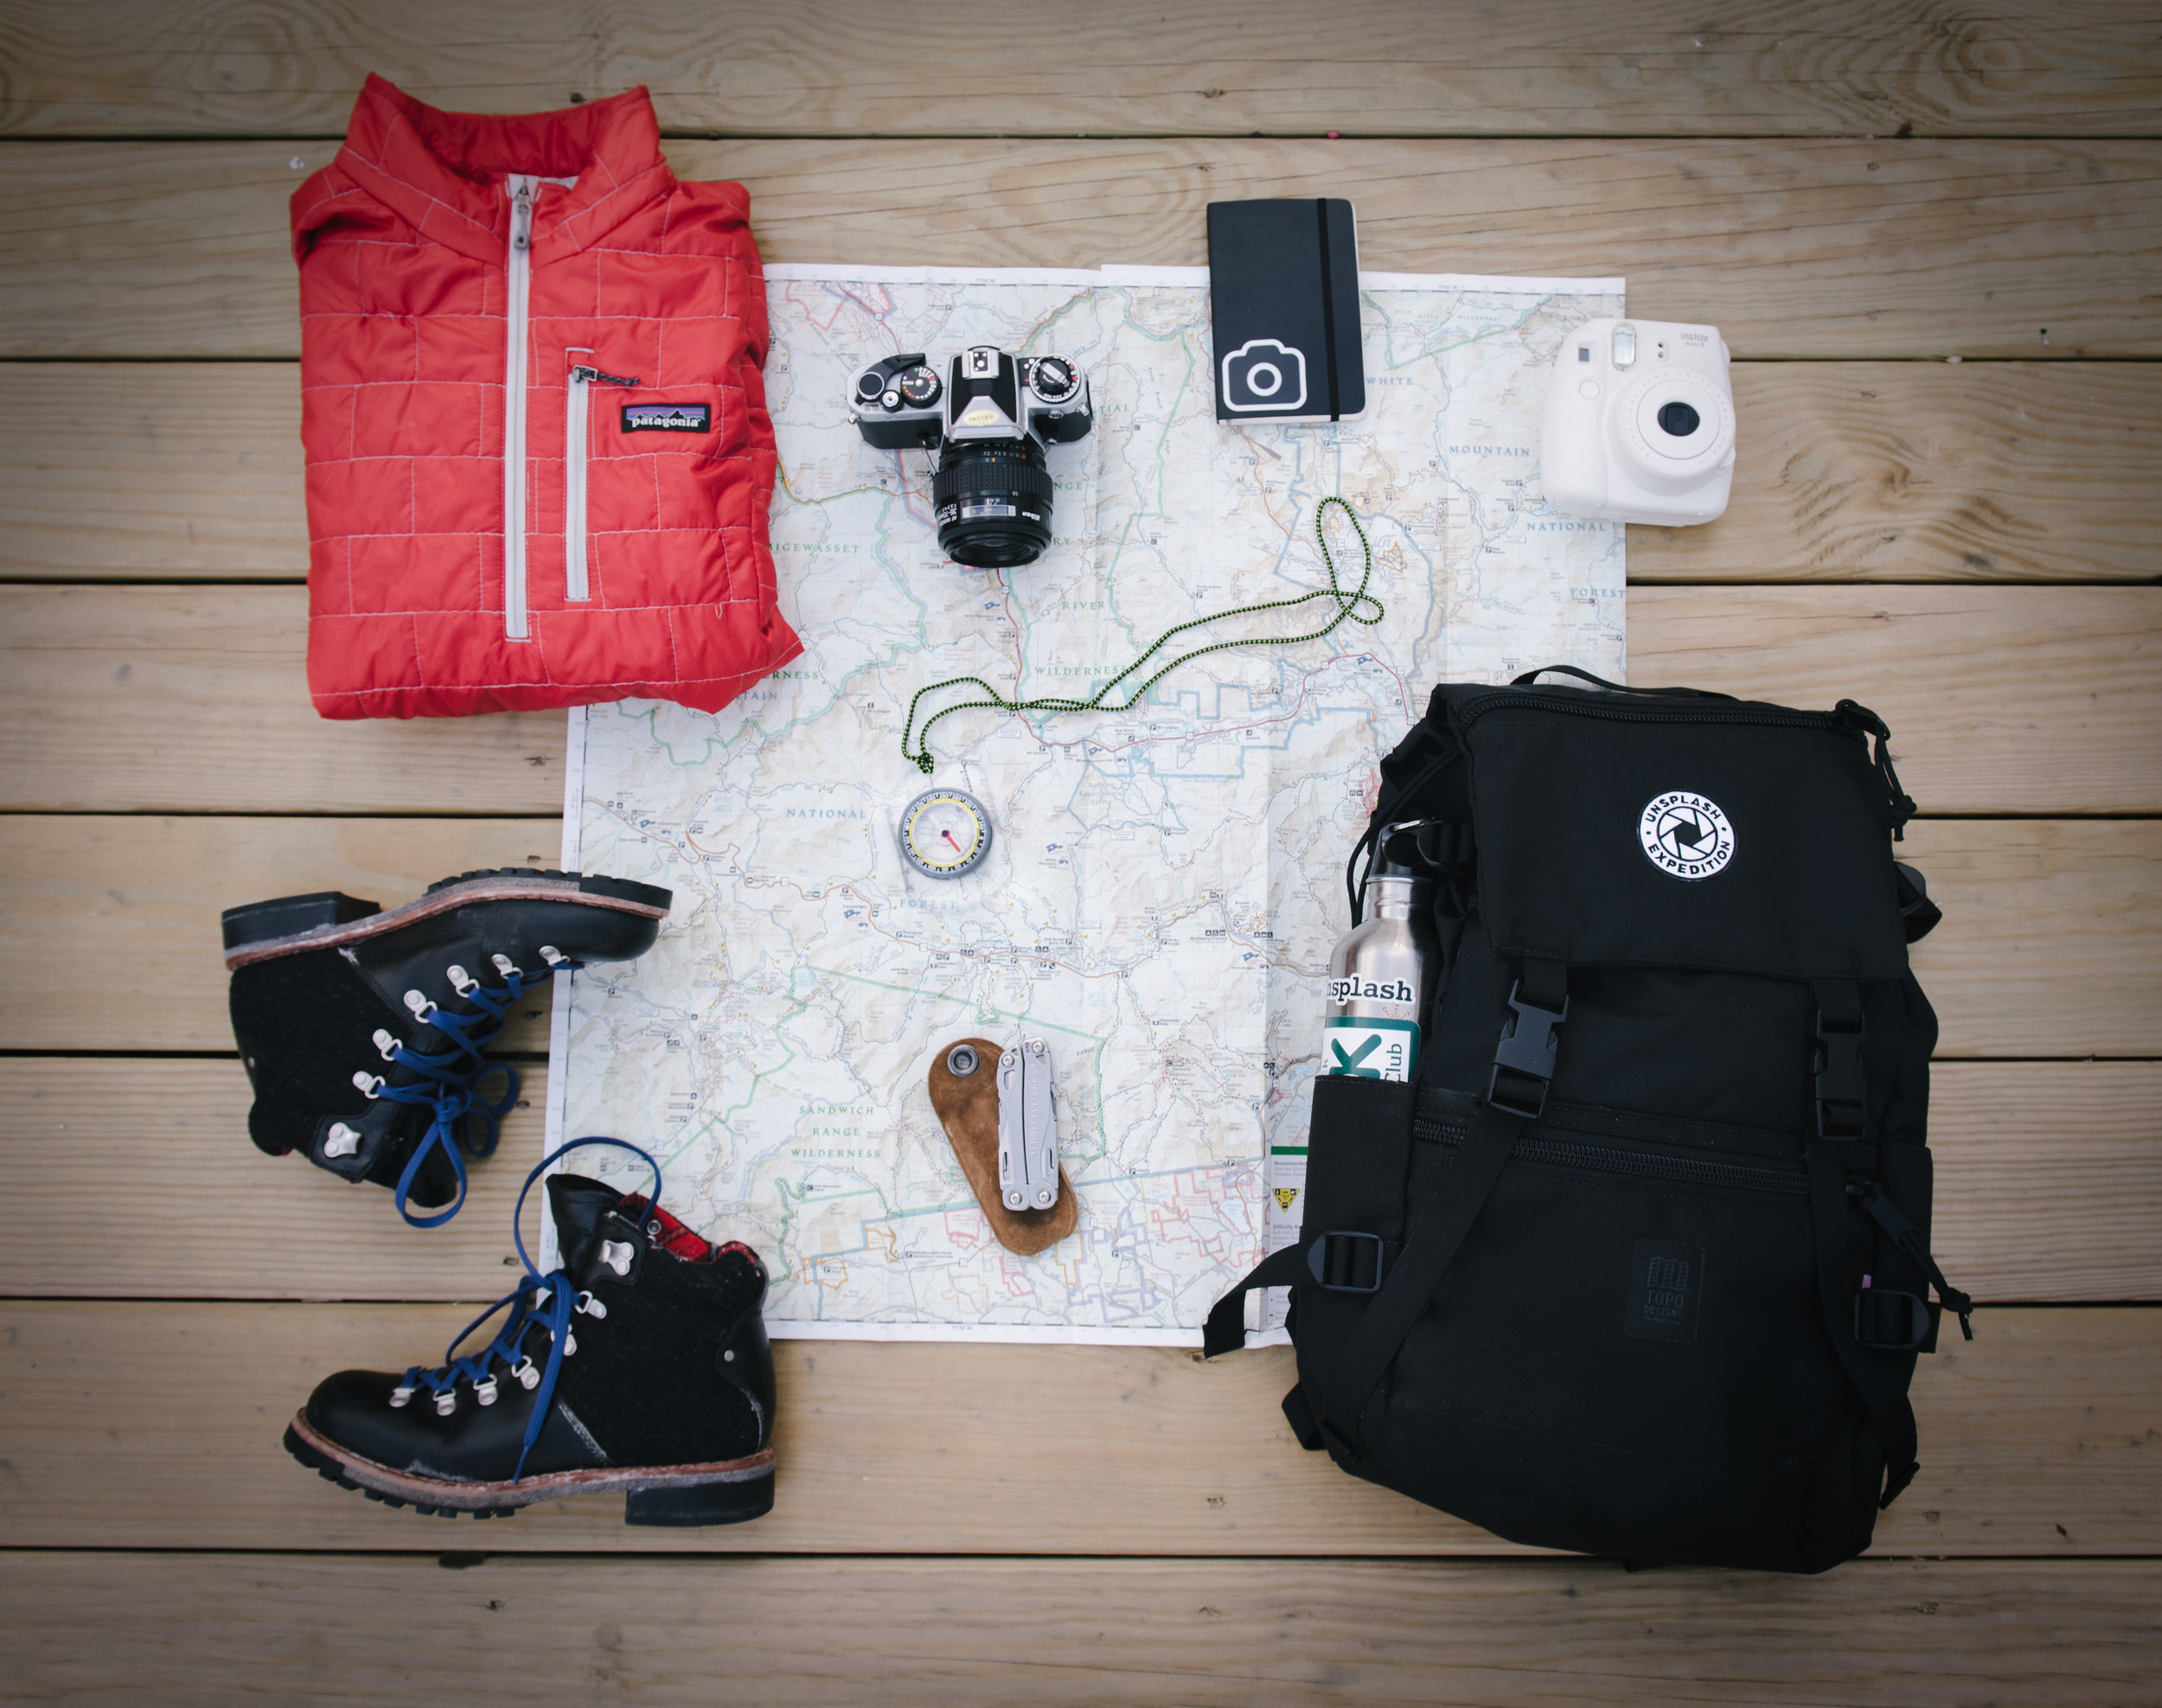 Gear - Accessories, Travel, Tech, Clothes